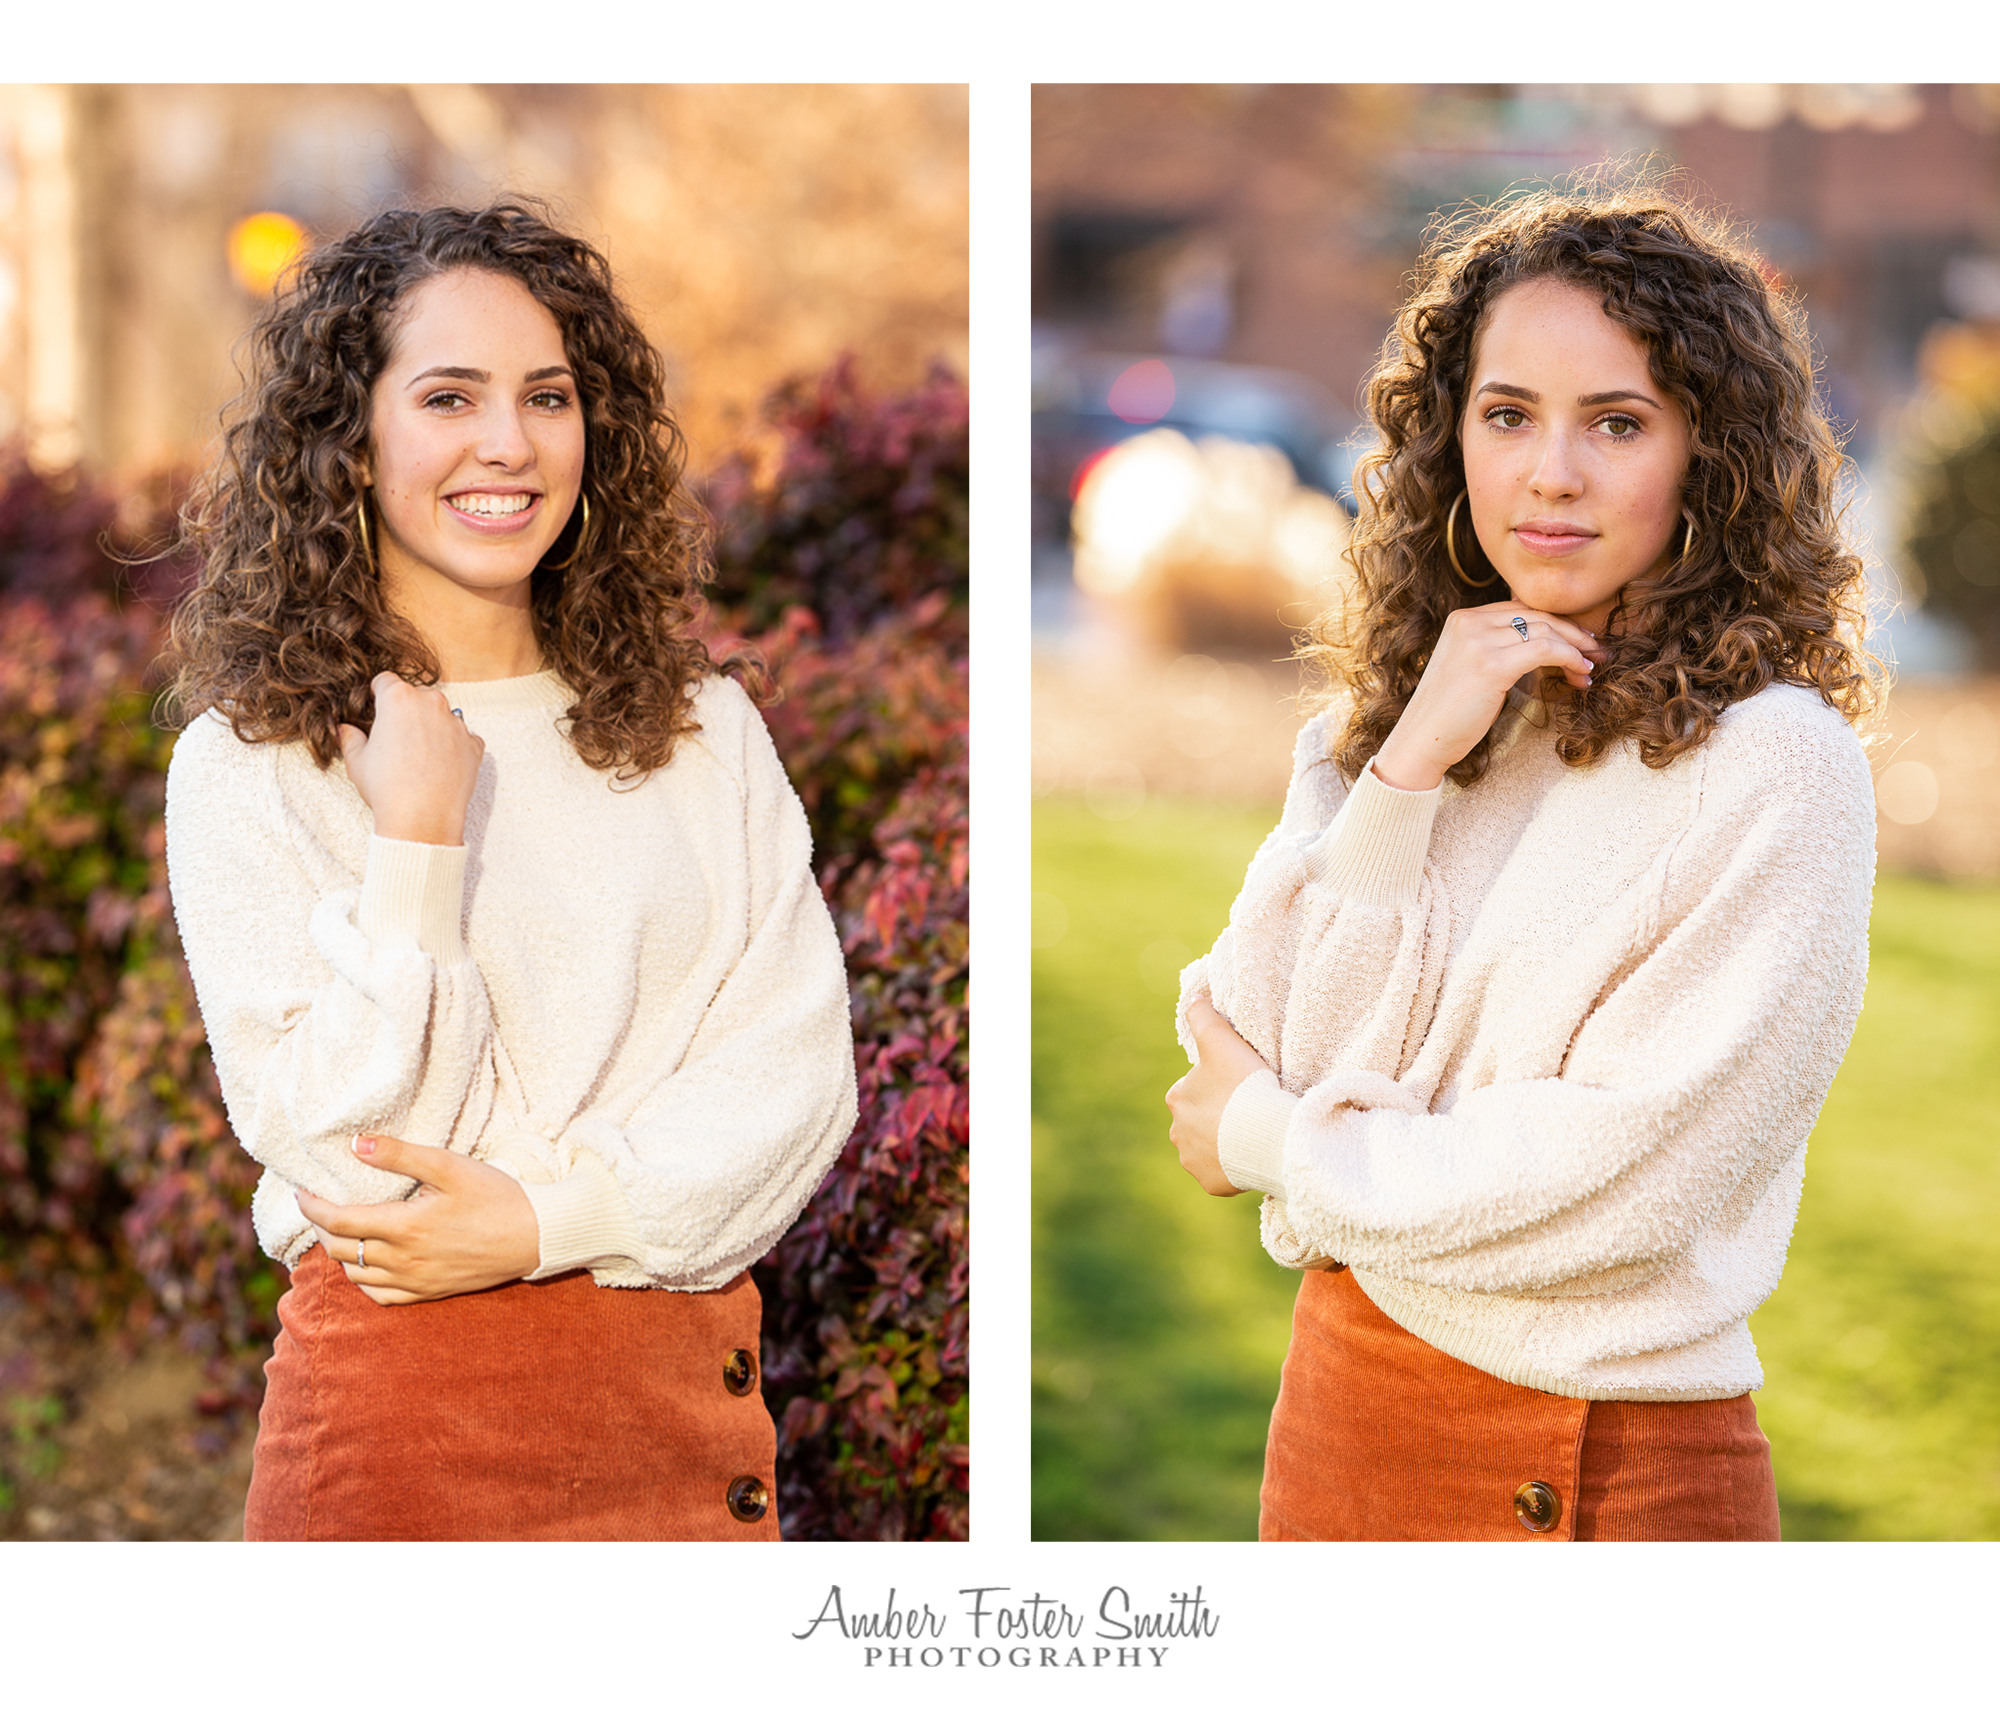 Amber Foster Smith Photography - Holly Springs High School Senior Photography